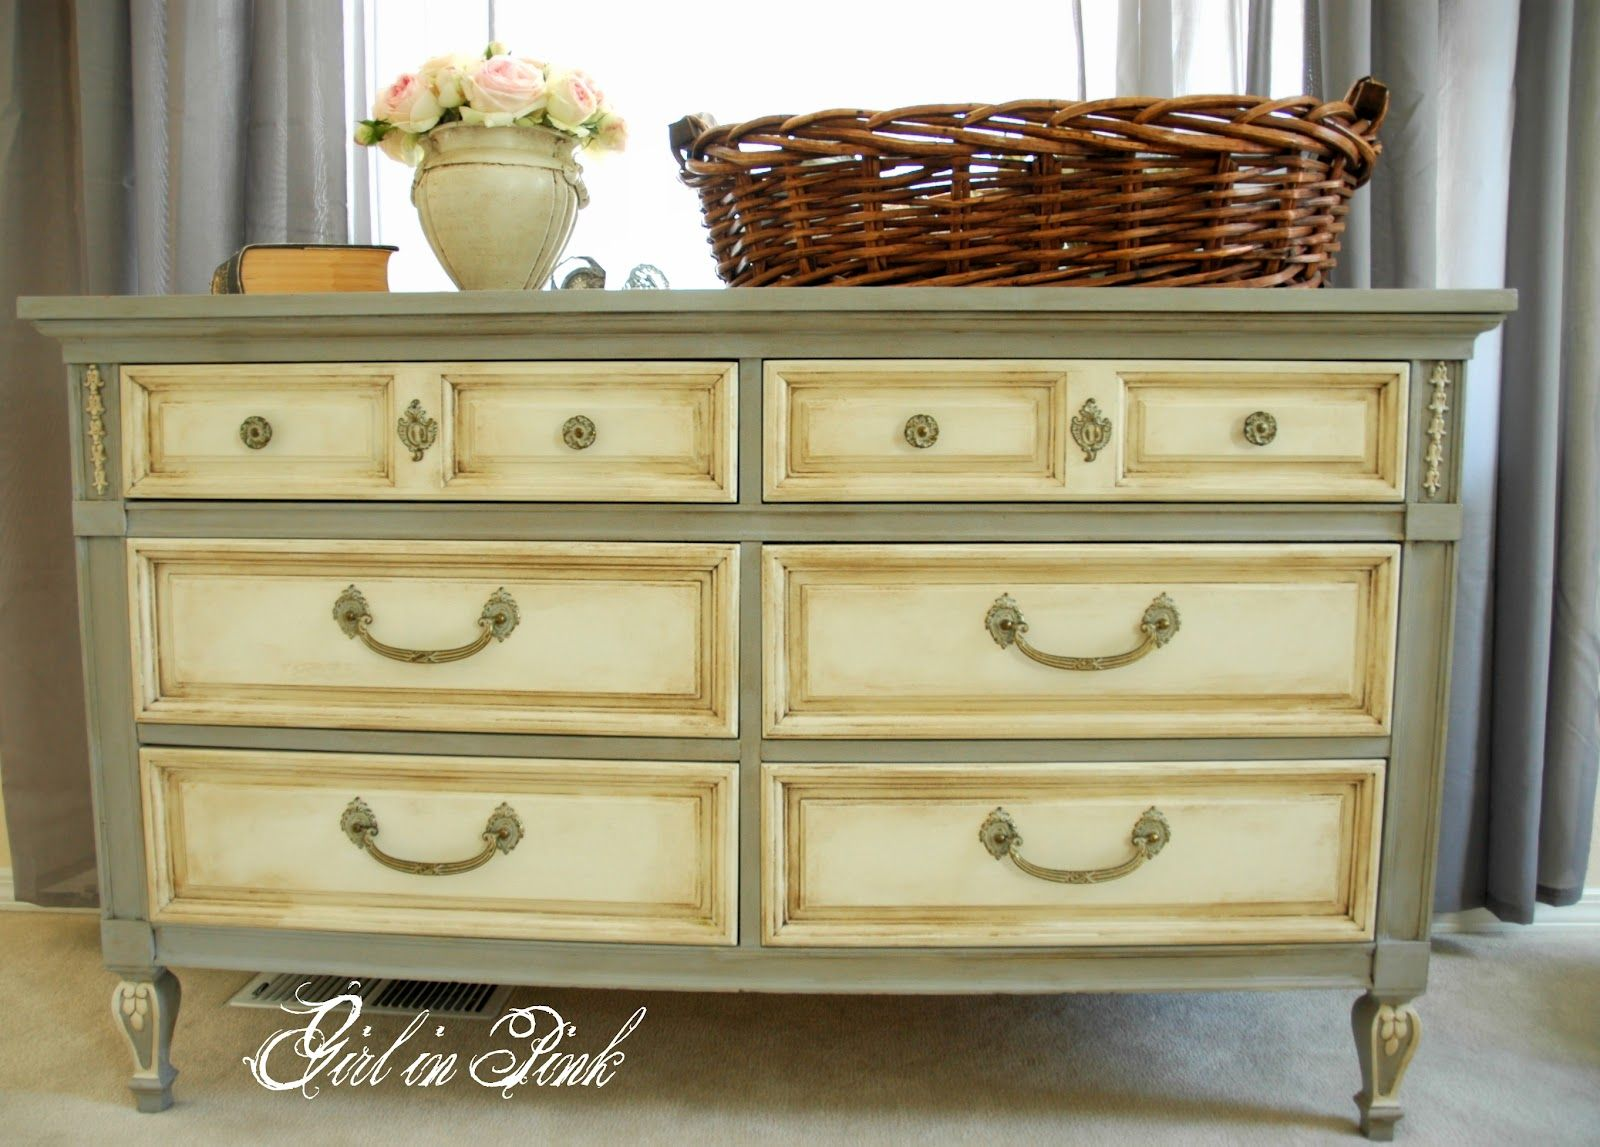 Chalk painted furniture ideas do you have something you Images of painted furniture